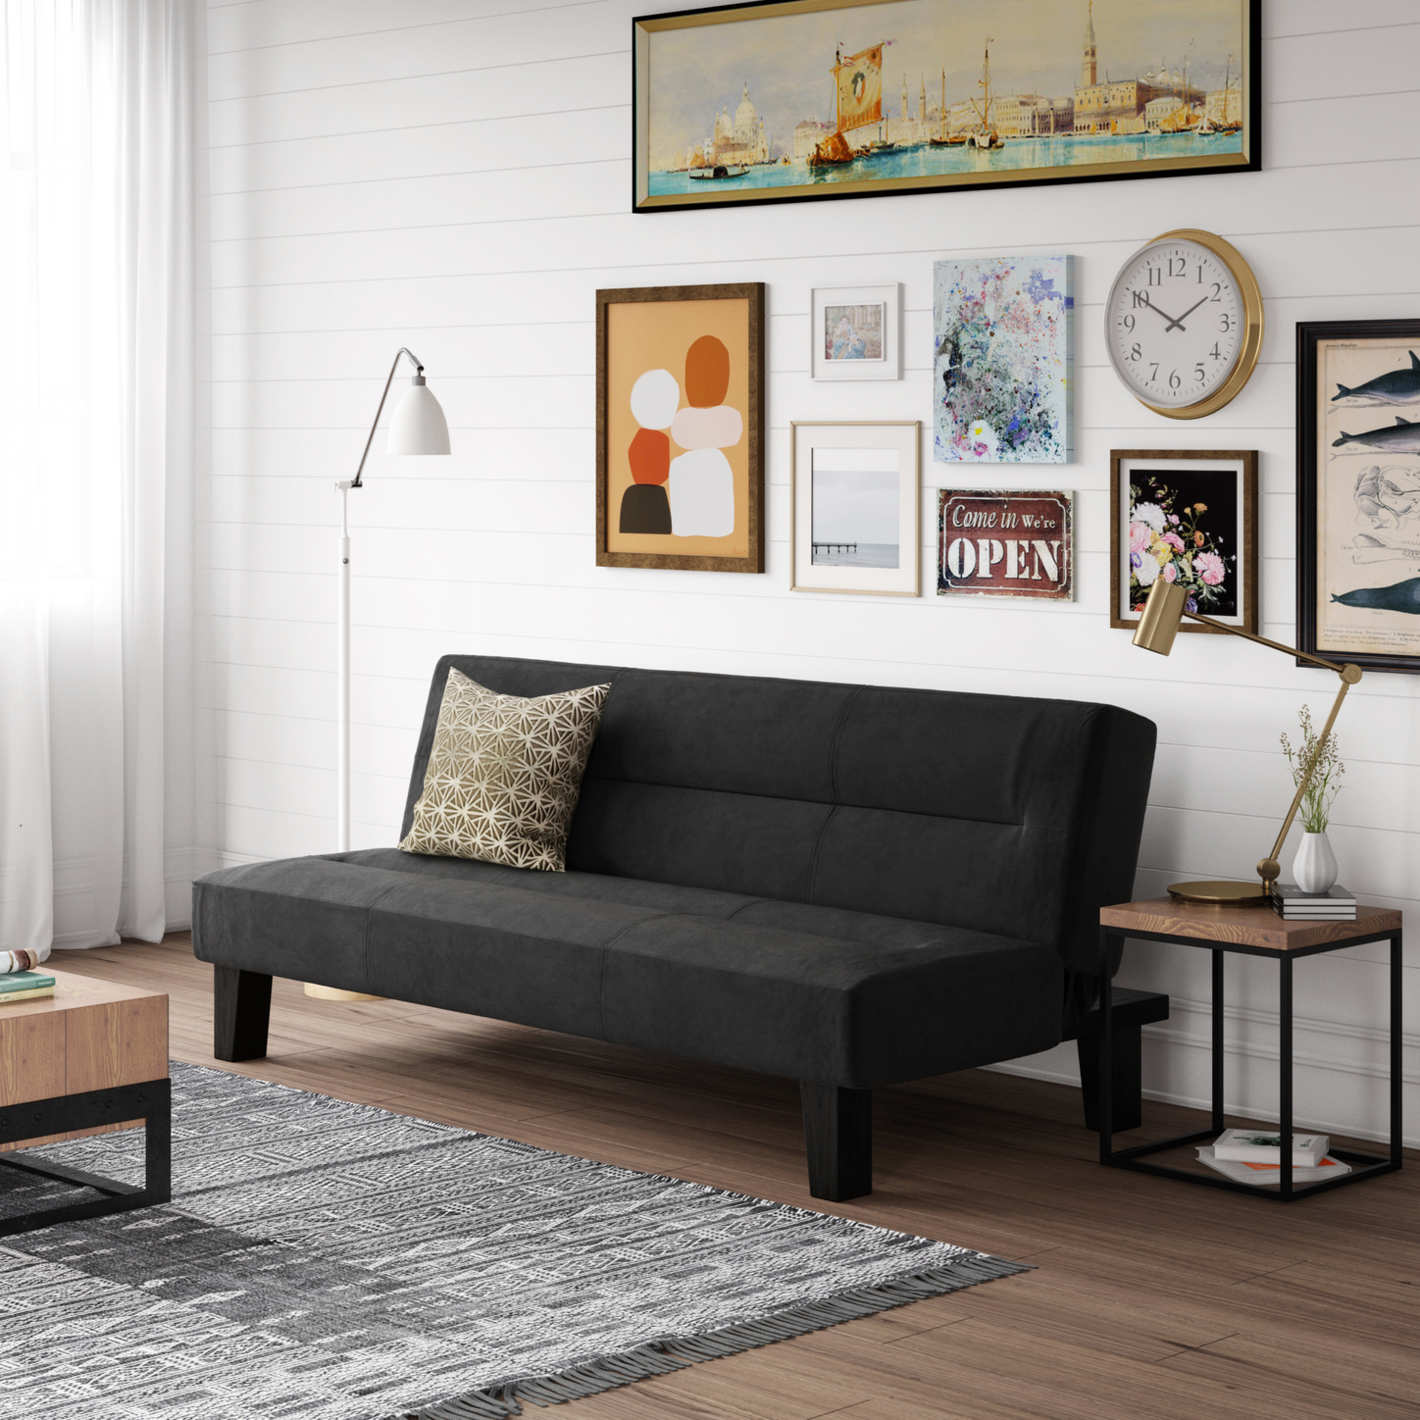 Best Black Friday Furniture Deals 2018